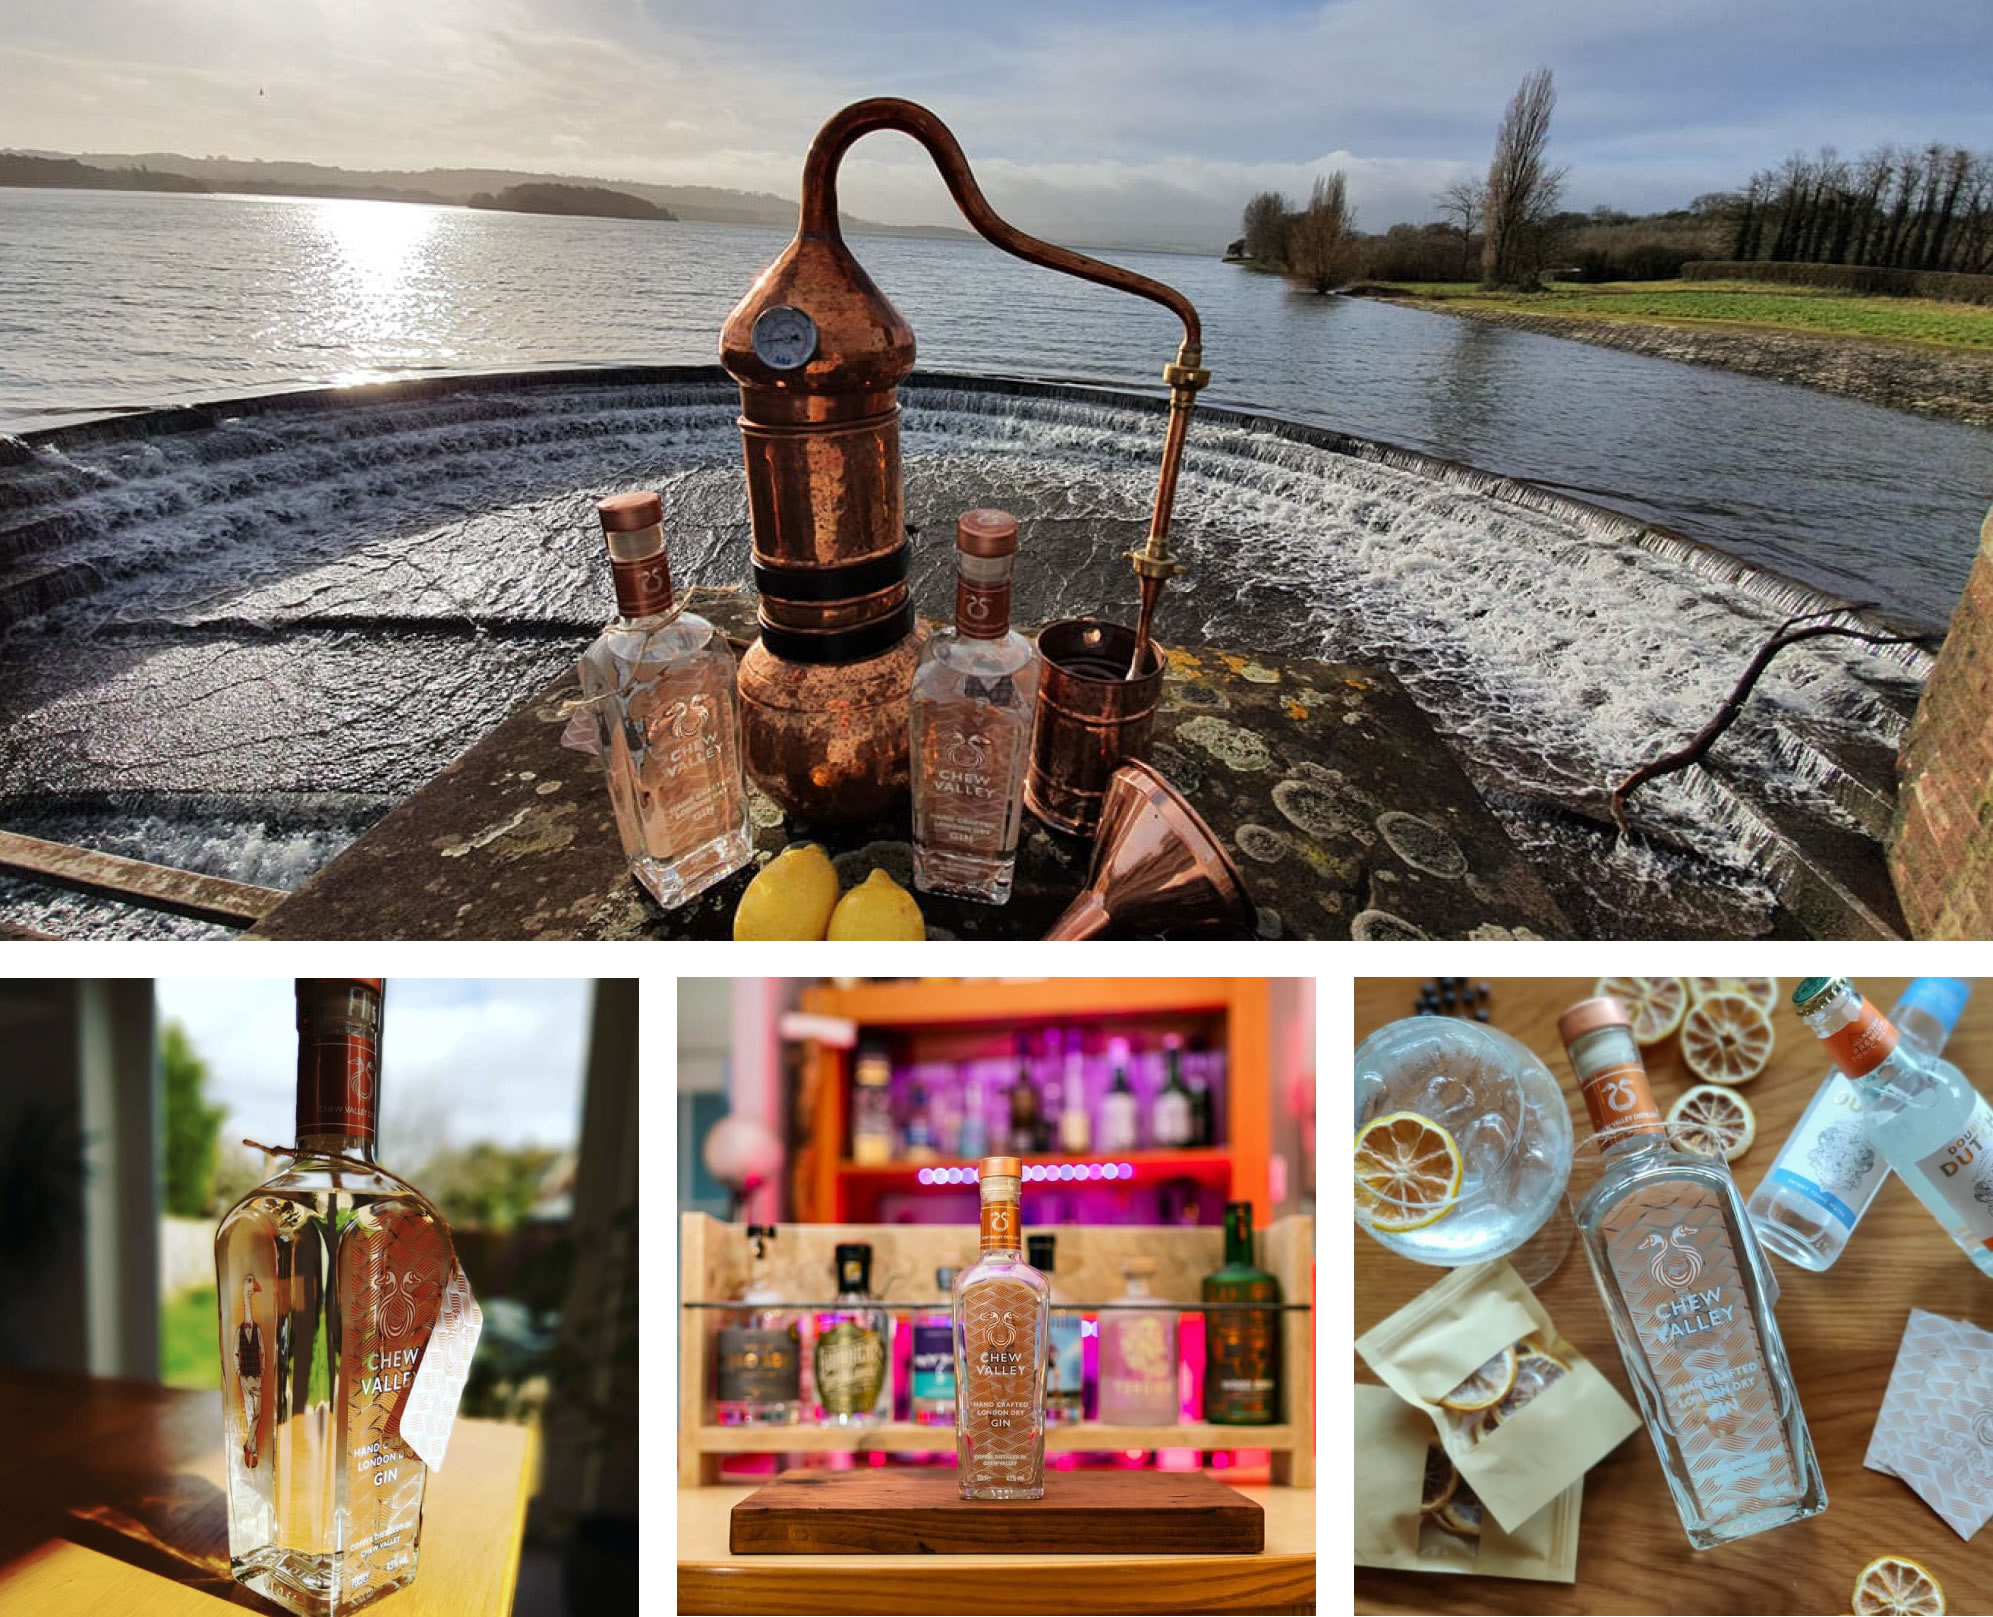 Chew Valley Gin